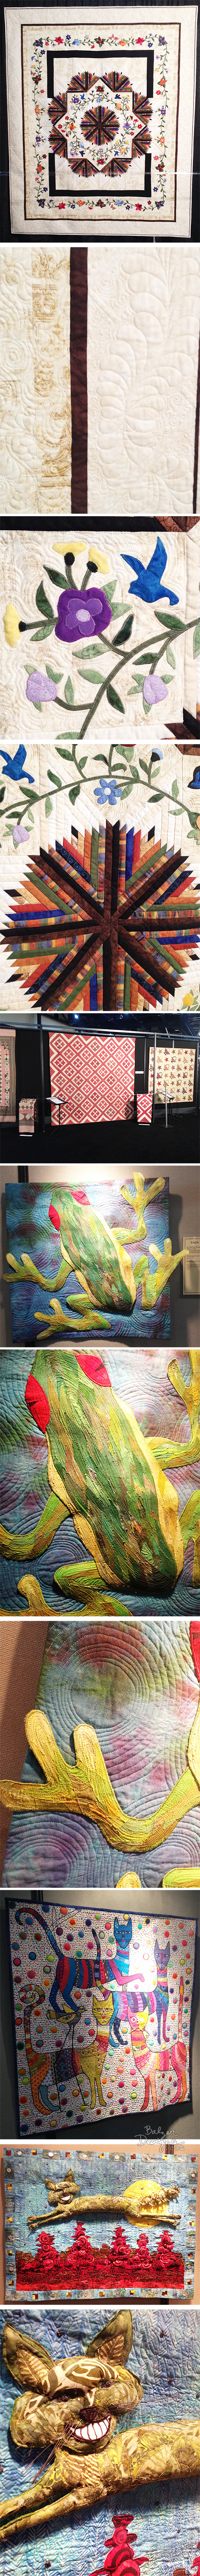 from the Balzer Designs Blog: Quilt Festival 2015 #quilting